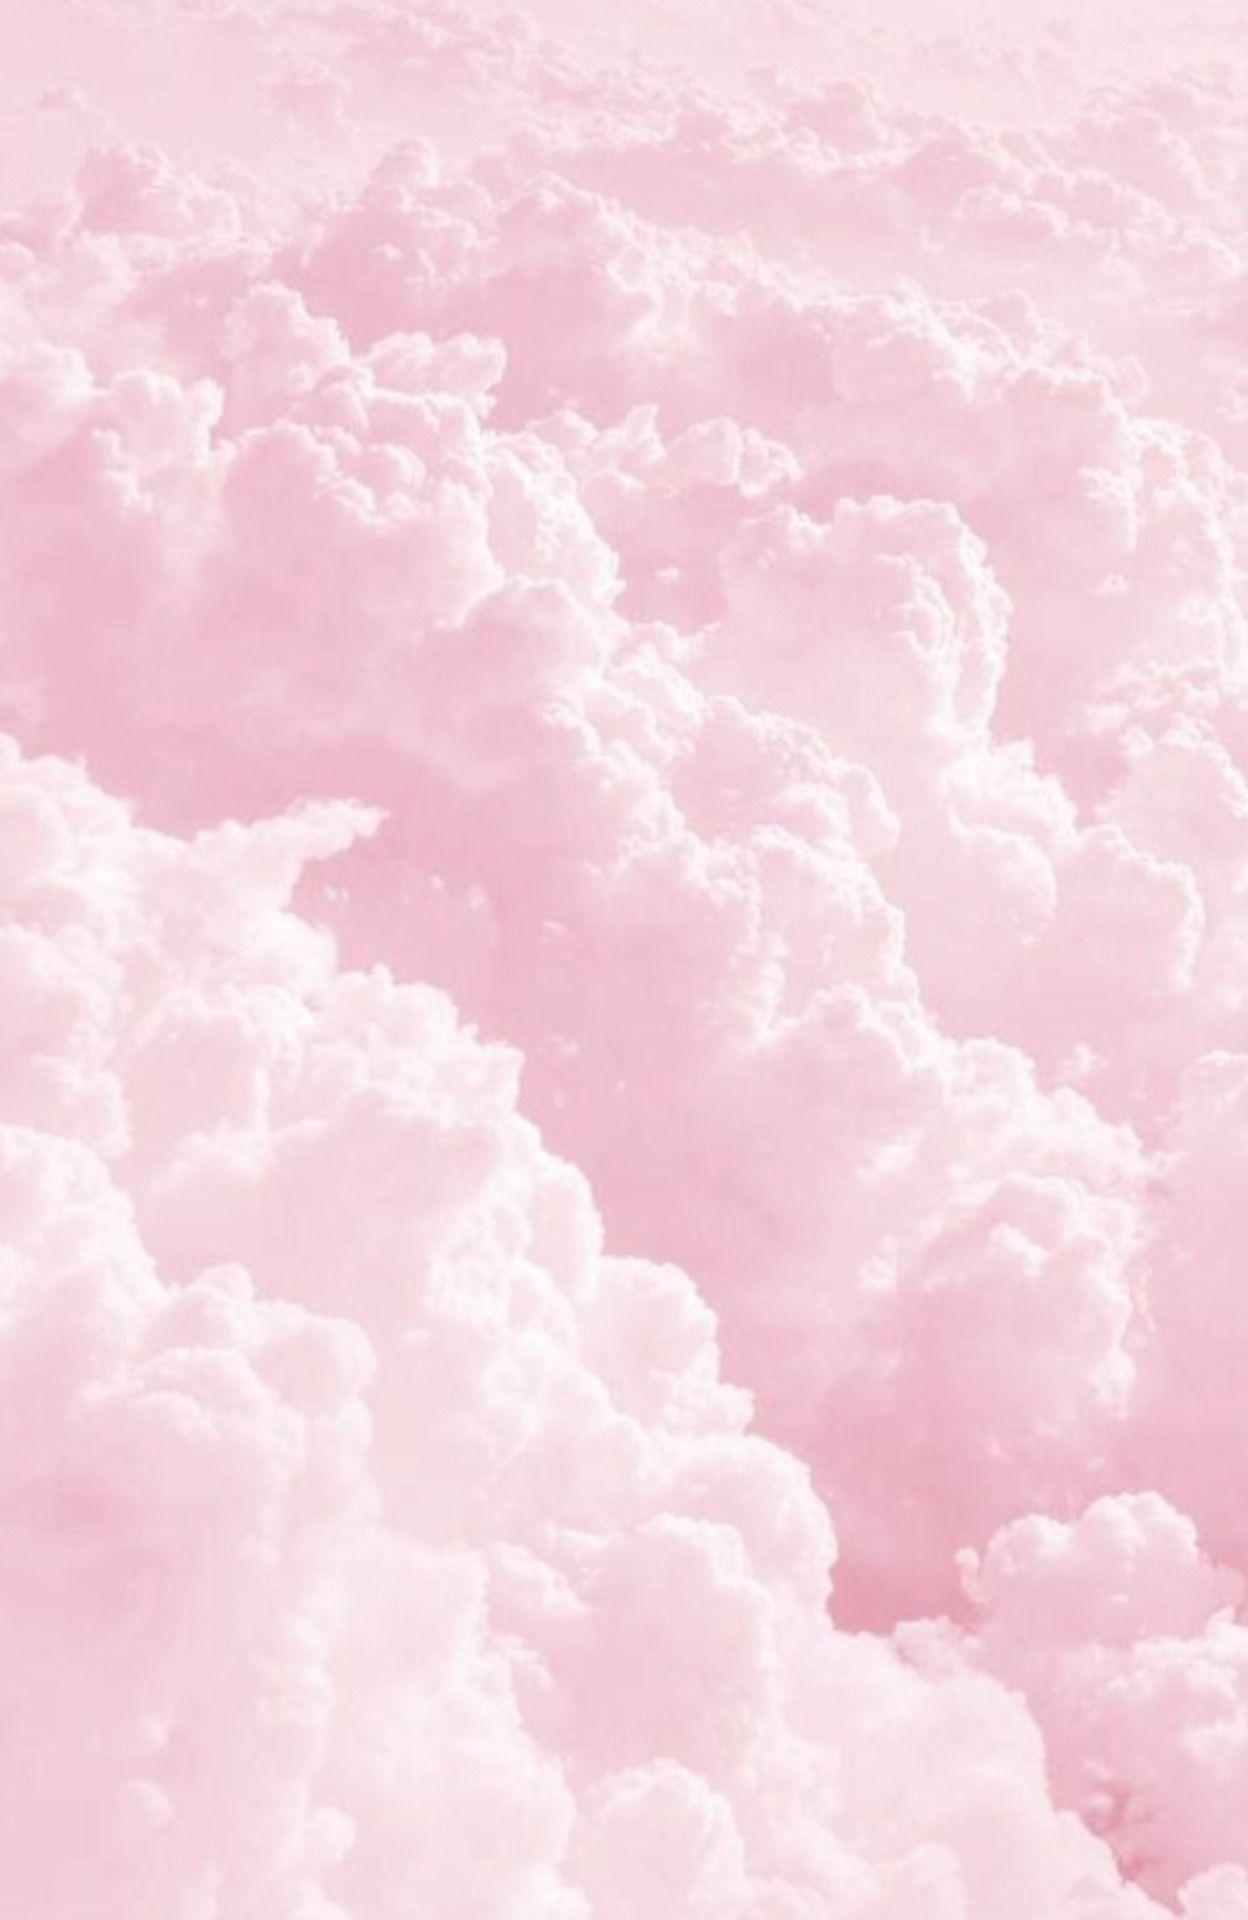 Aesthetic Pink Pastel Wallpapers   Wallpaper Cave